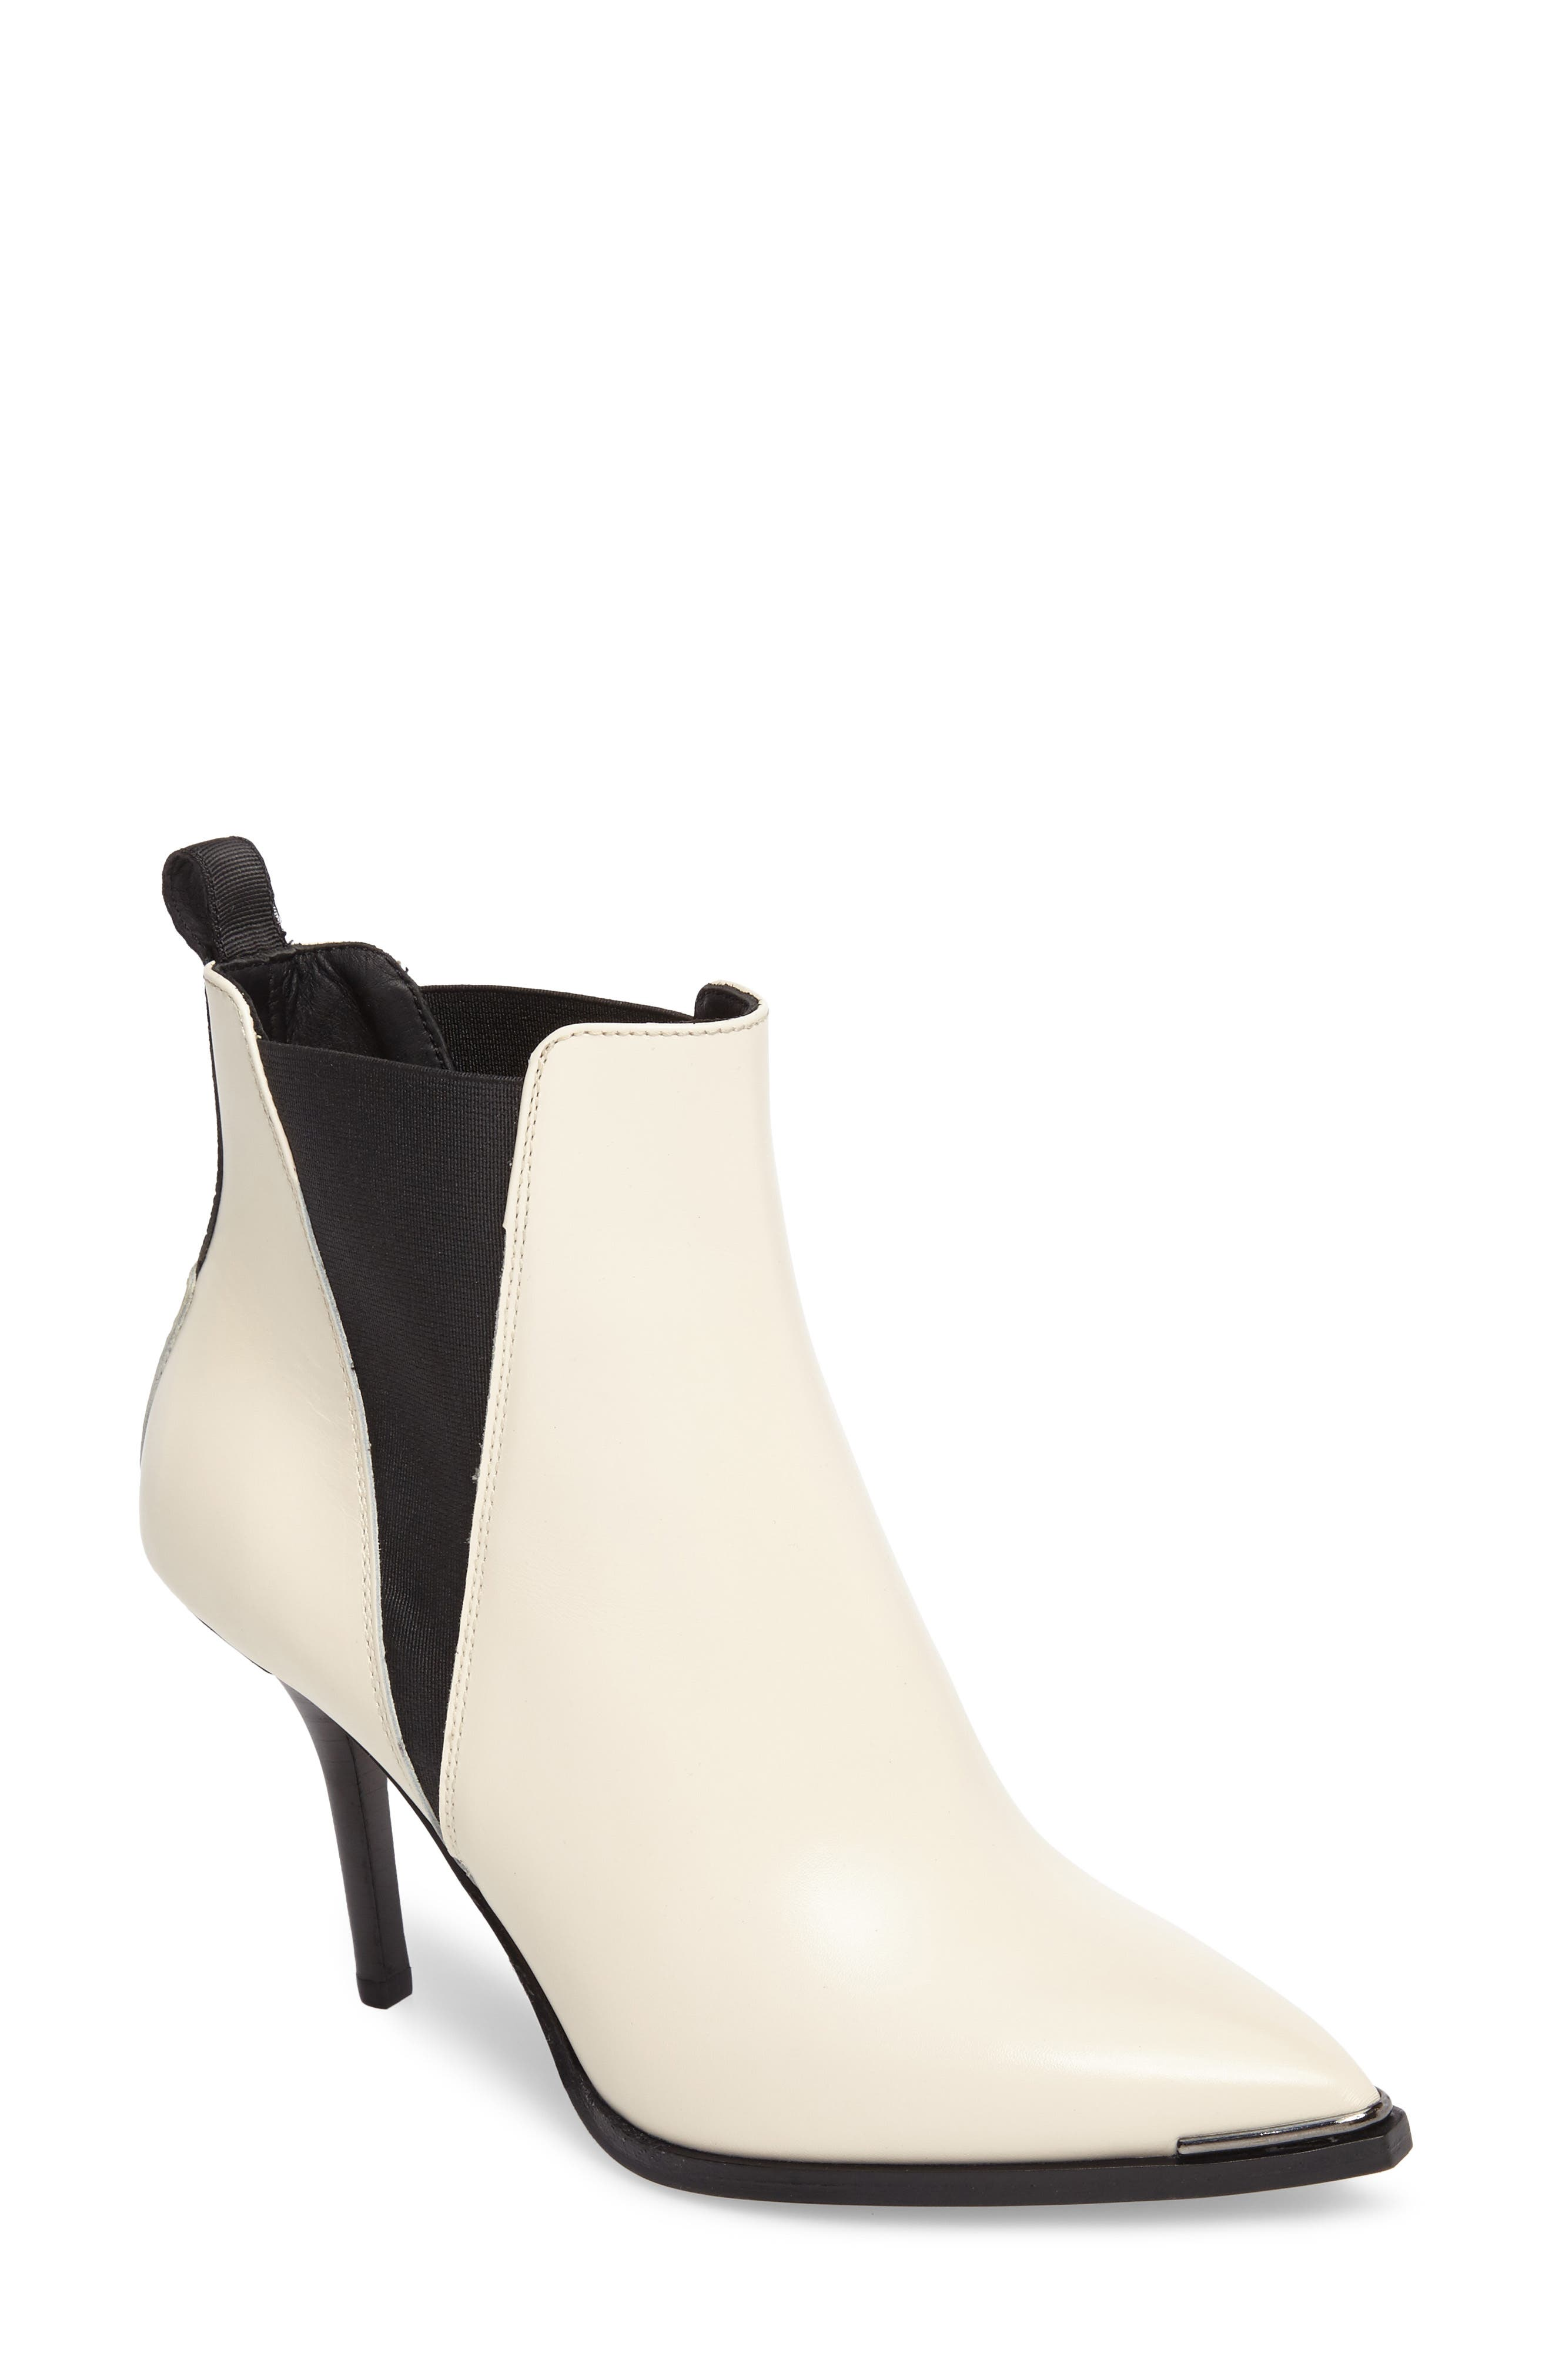 Alternate Image 1 Selected - ACNE Studios Jemma Pointy Toe Bootie (Women)